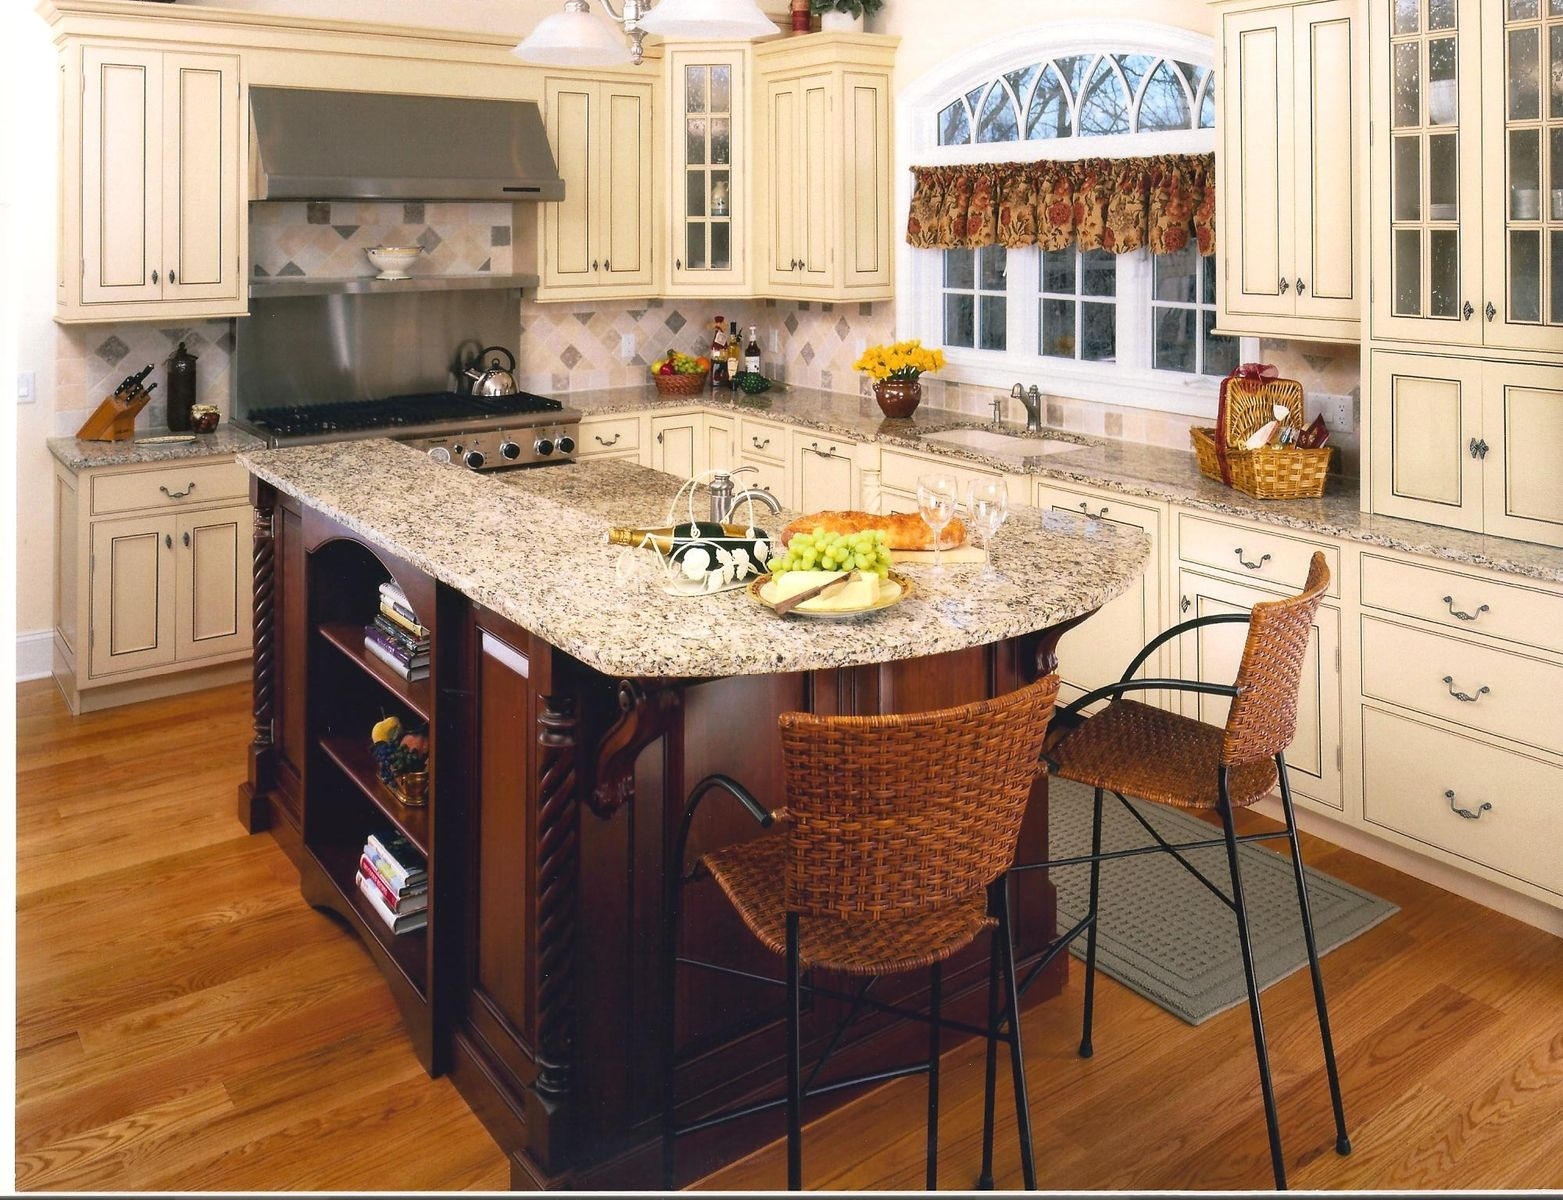 Kitchen cabinets eastern ct - Kitchen Cabinets Eastern Ct 33